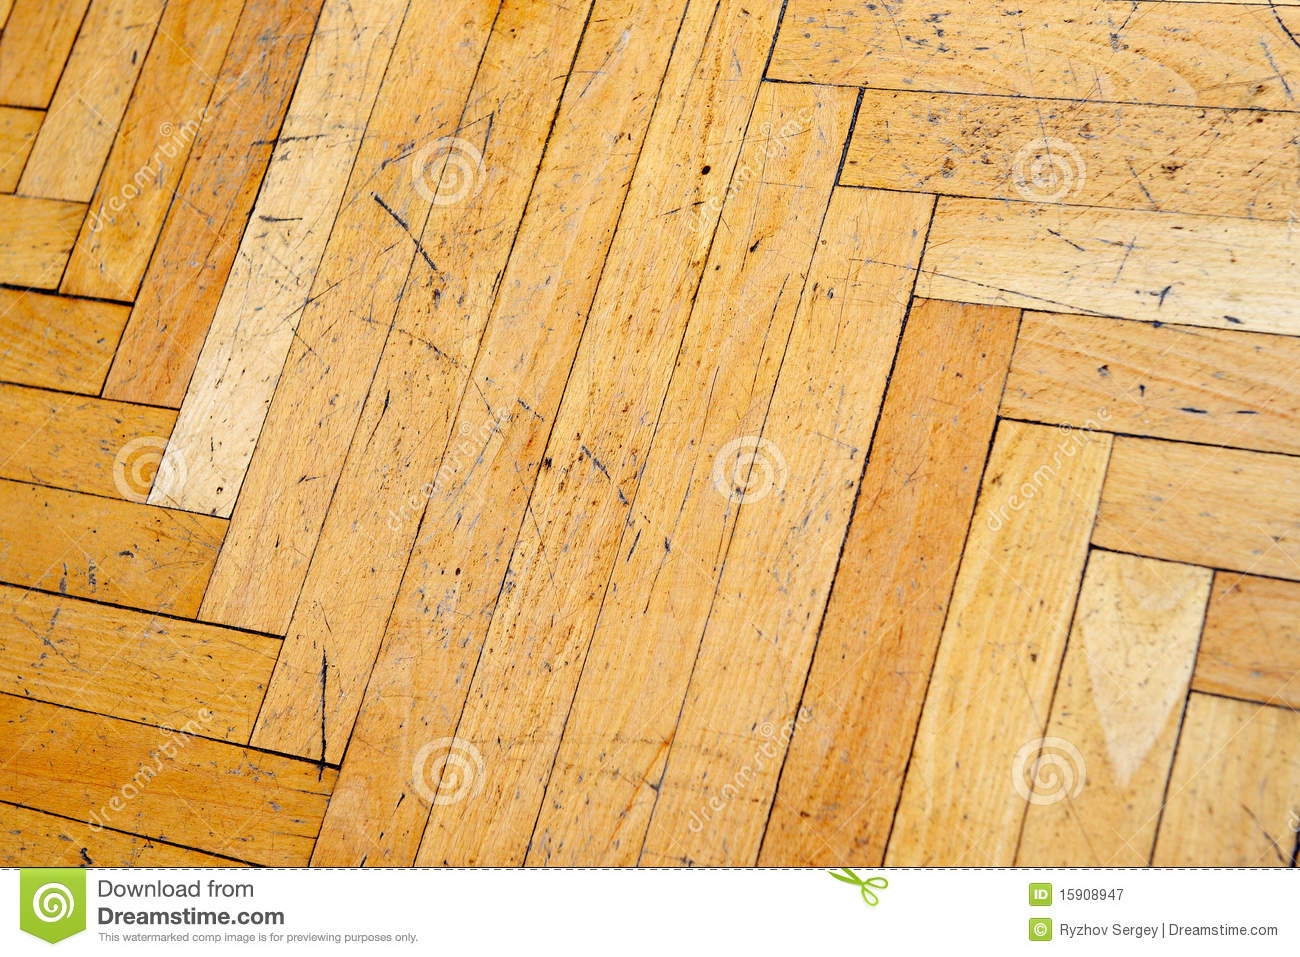 vieux parquet en bois ray image stock image du detail 15908947. Black Bedroom Furniture Sets. Home Design Ideas